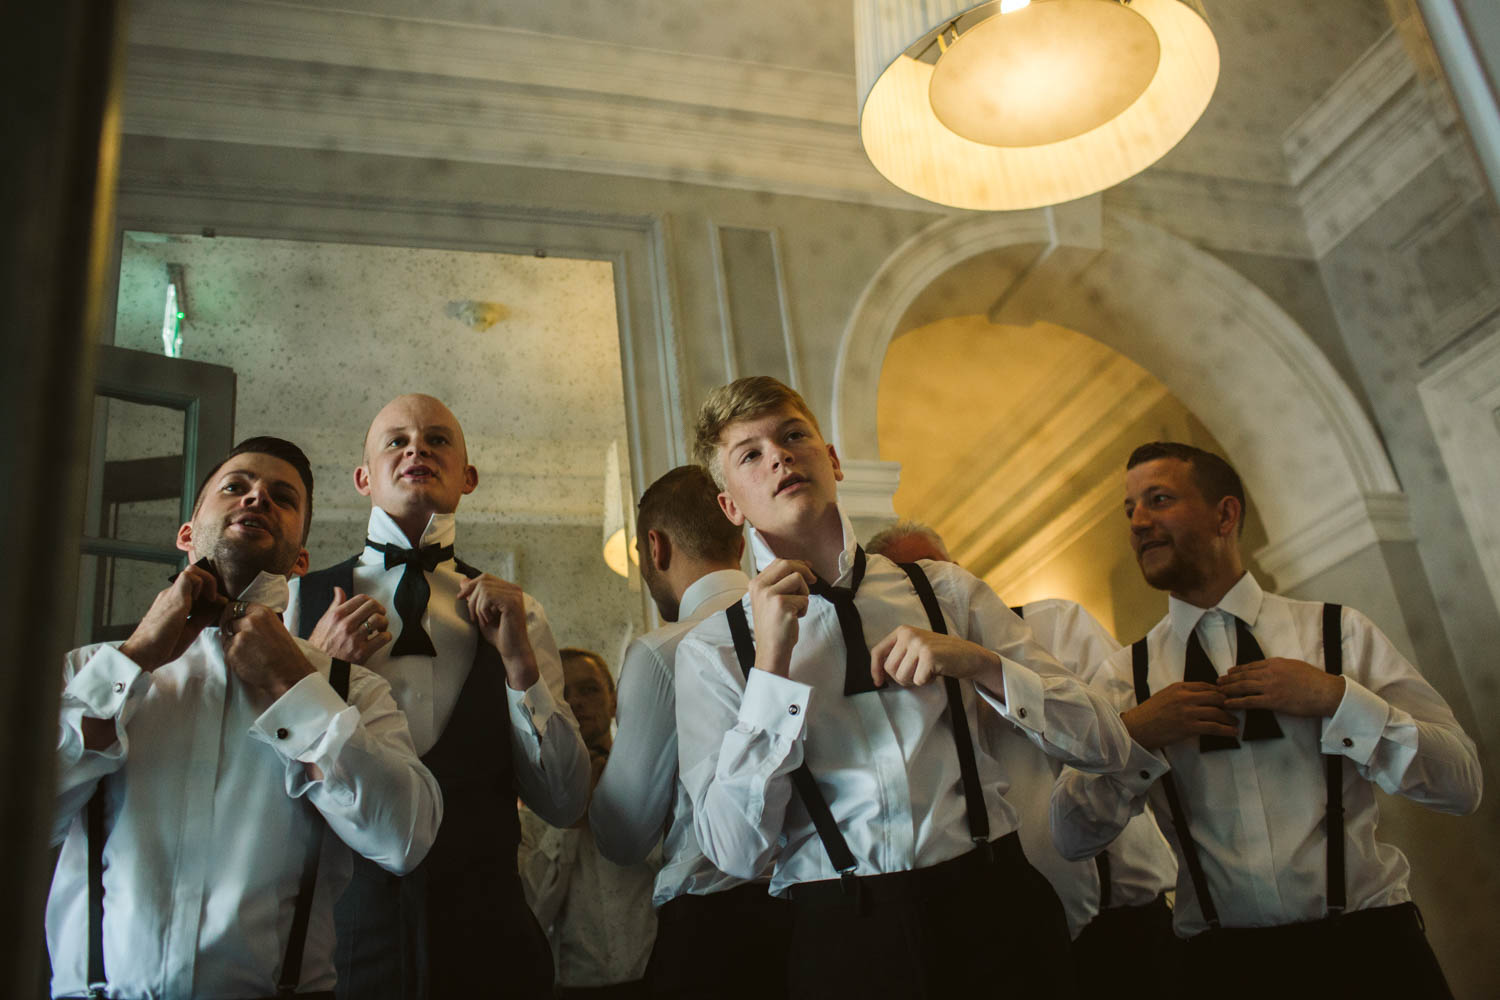 the groomsmen tiring bowties in a funky mirror